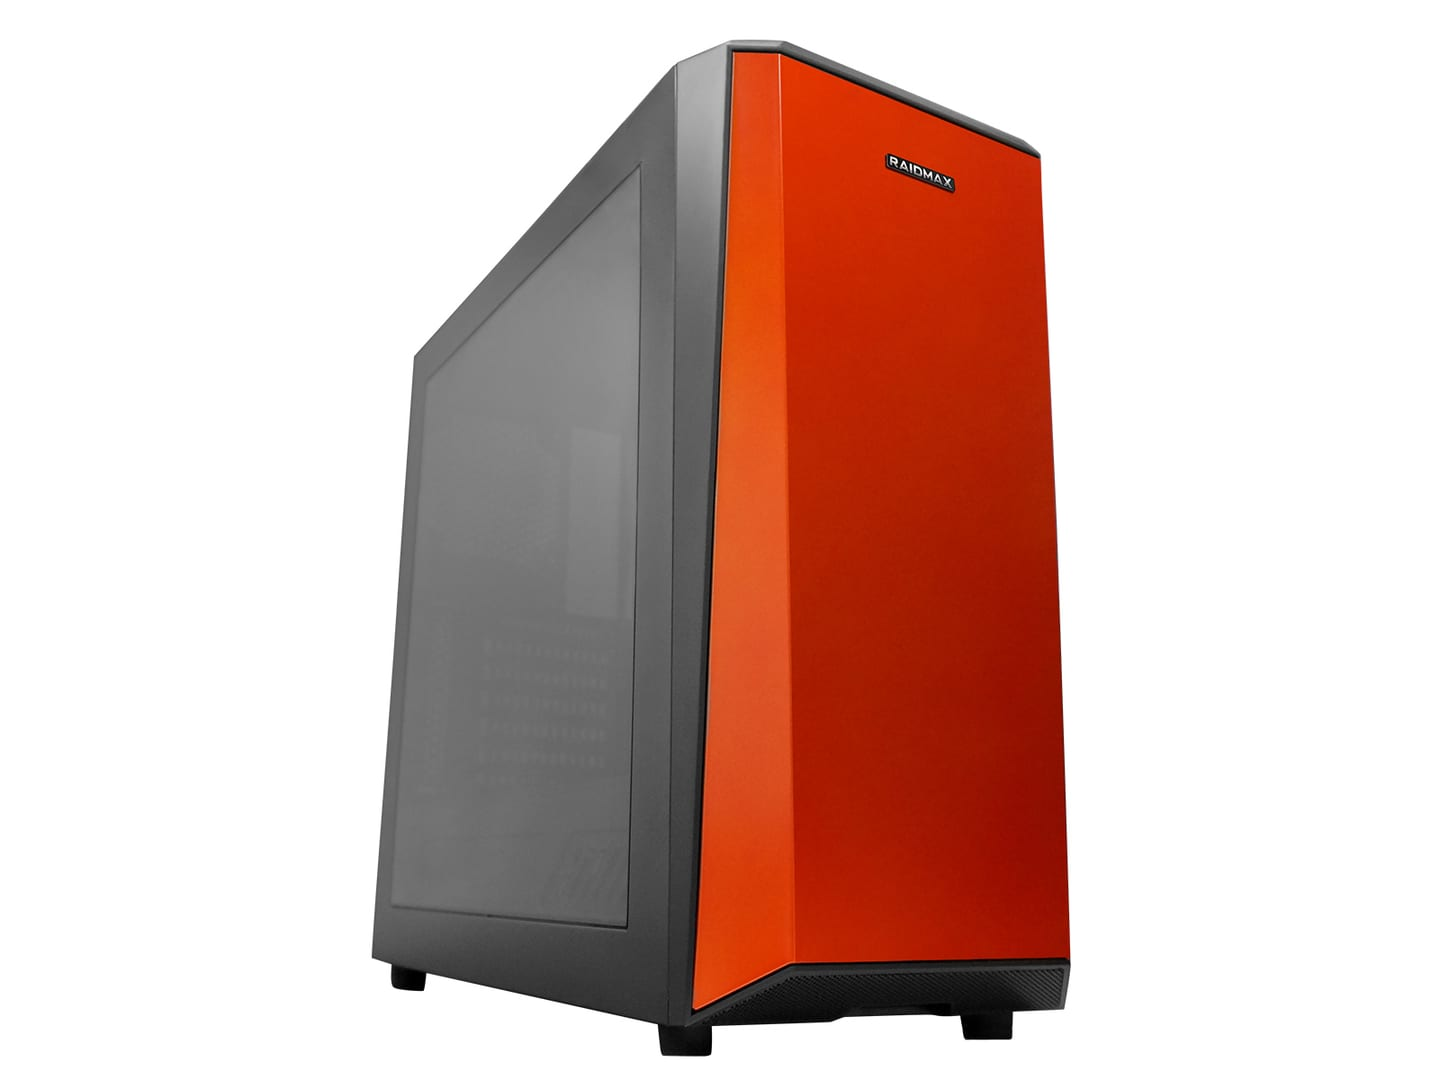 Raidmax Delta I Gaming Chassis Black and Orange With Window